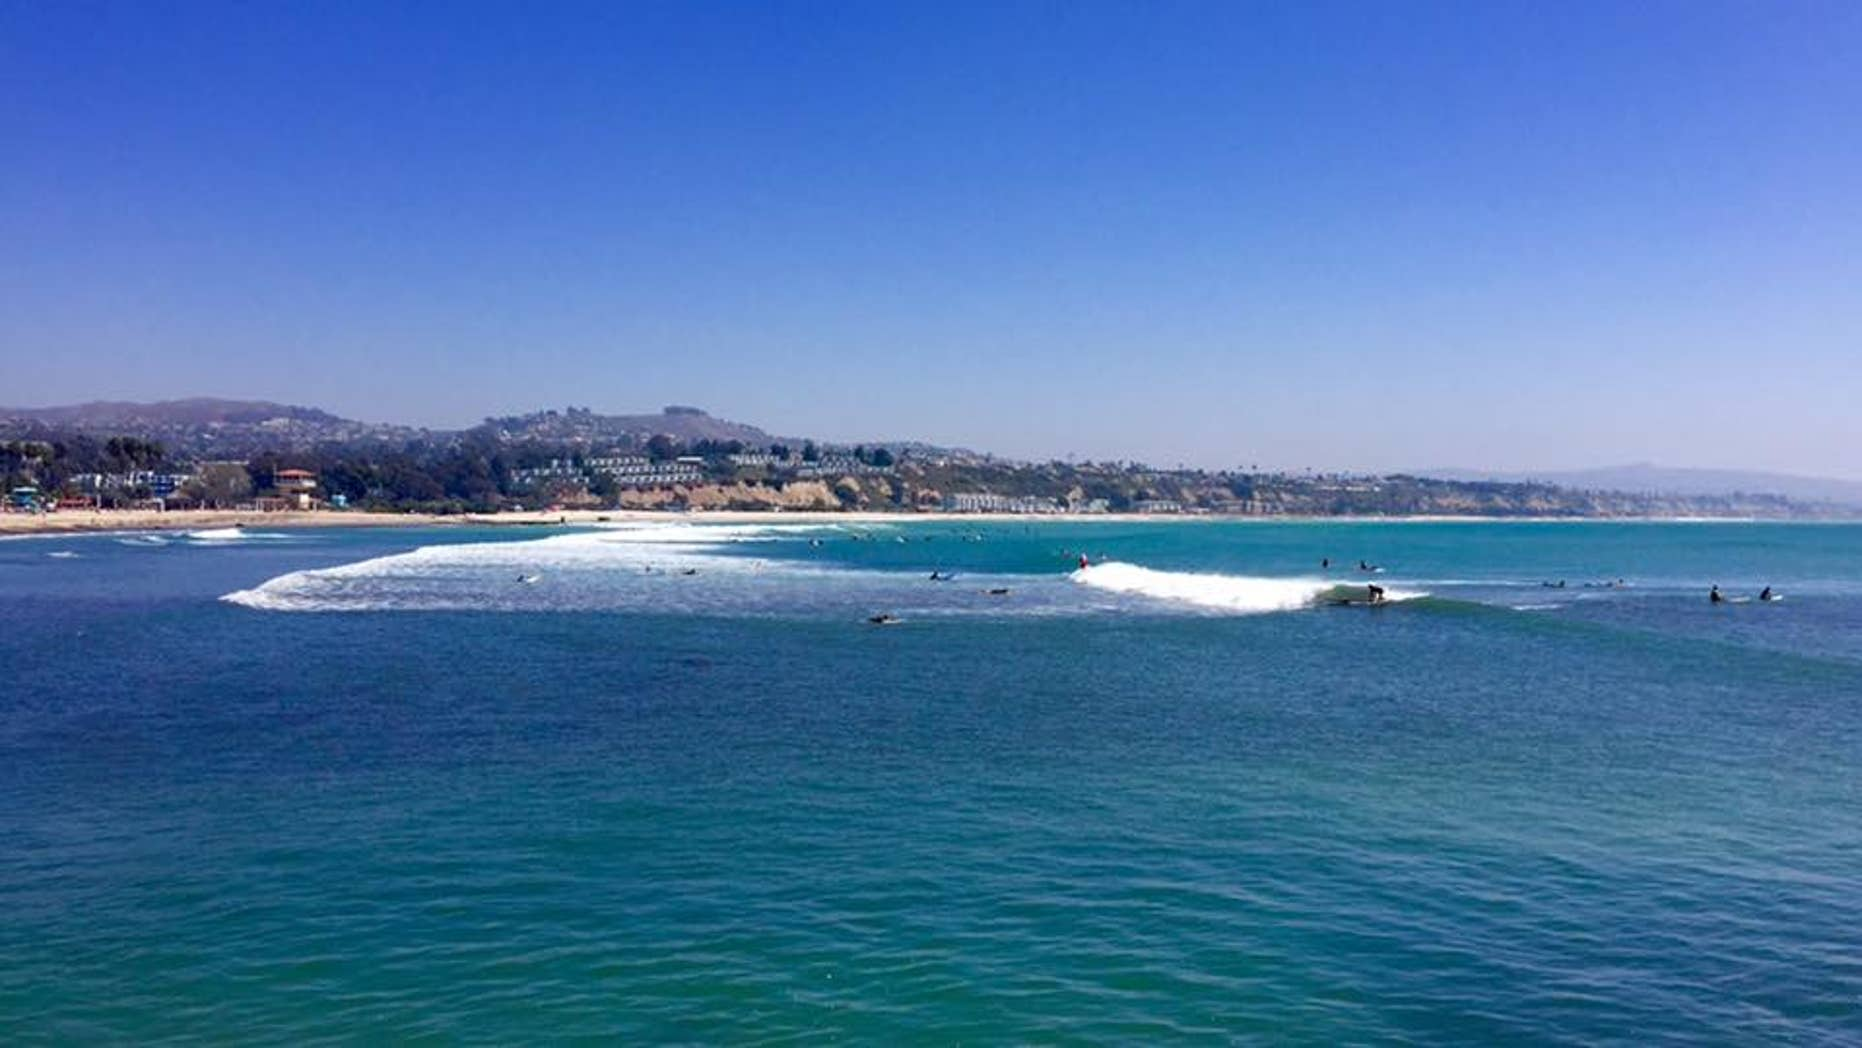 A surfer was found face down in the water at Doheny State Beach in Dana Point, Calif., on Tuesday and later died, a report said.